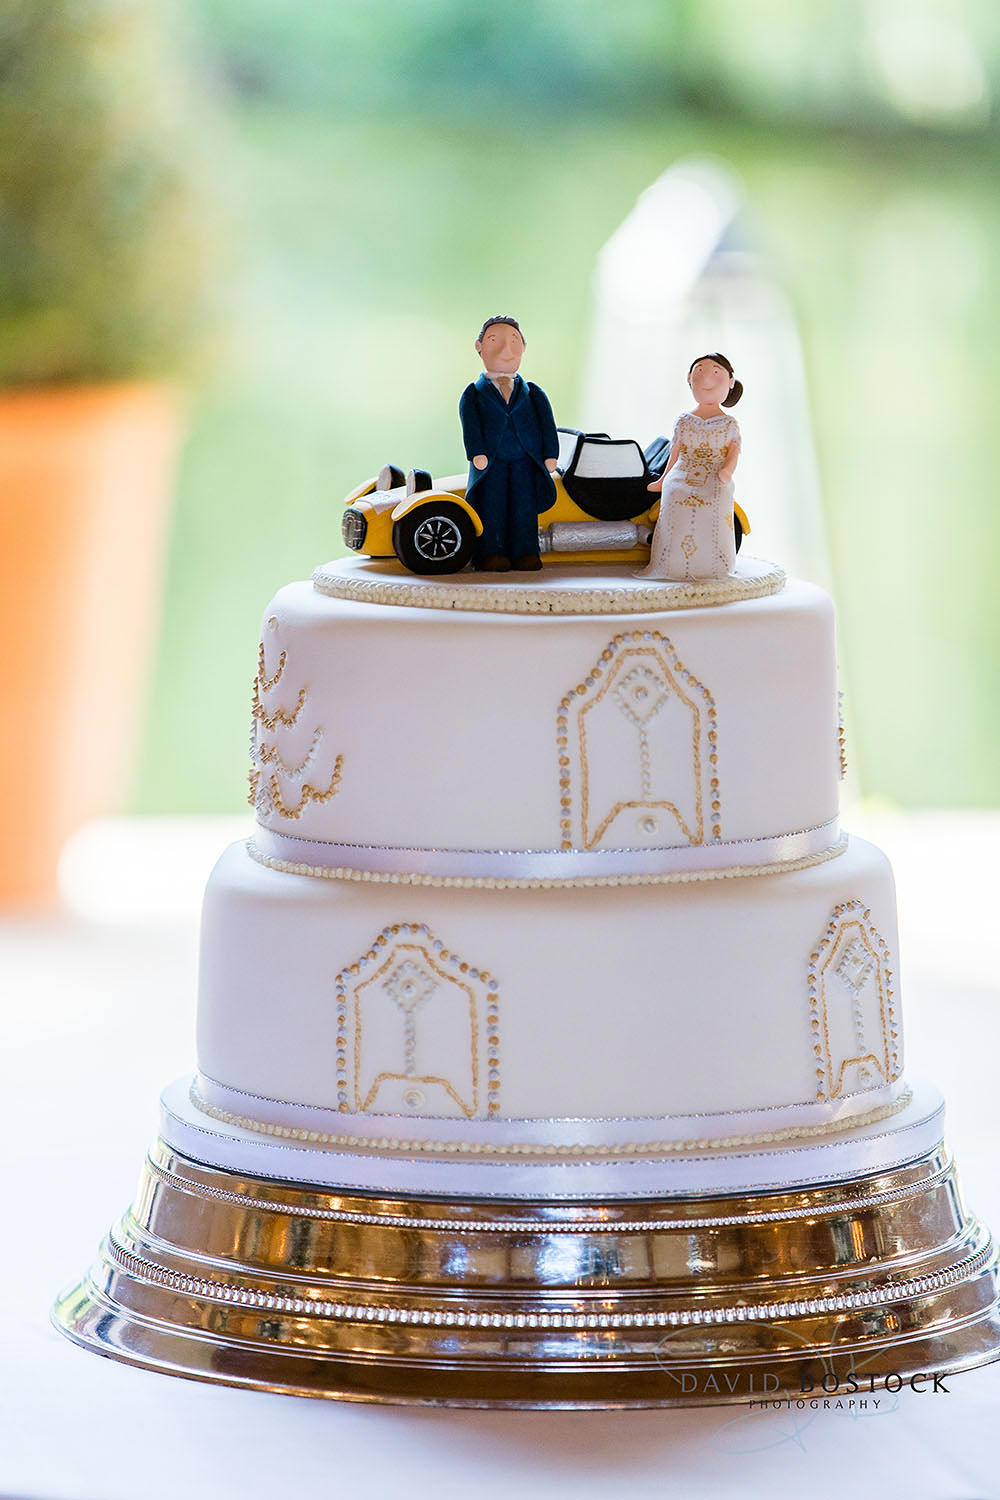 The Dairy Waddesdon wedding photo cake